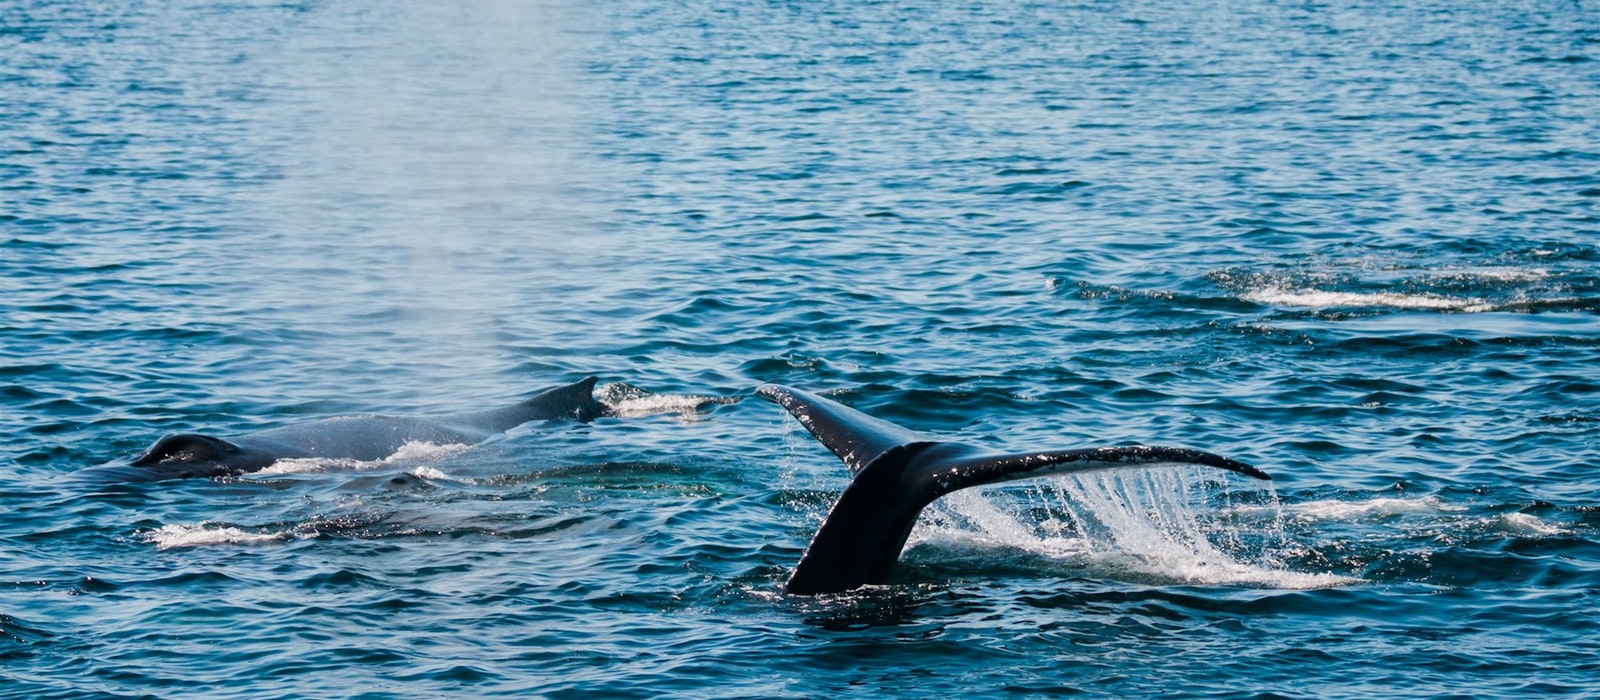 The International Fund for Animal Welfareand Kin Travel are offering a special conservation class in Provincetown, Massachusetts,dedicated to saving marine mammals off the coast of Cape Cod.